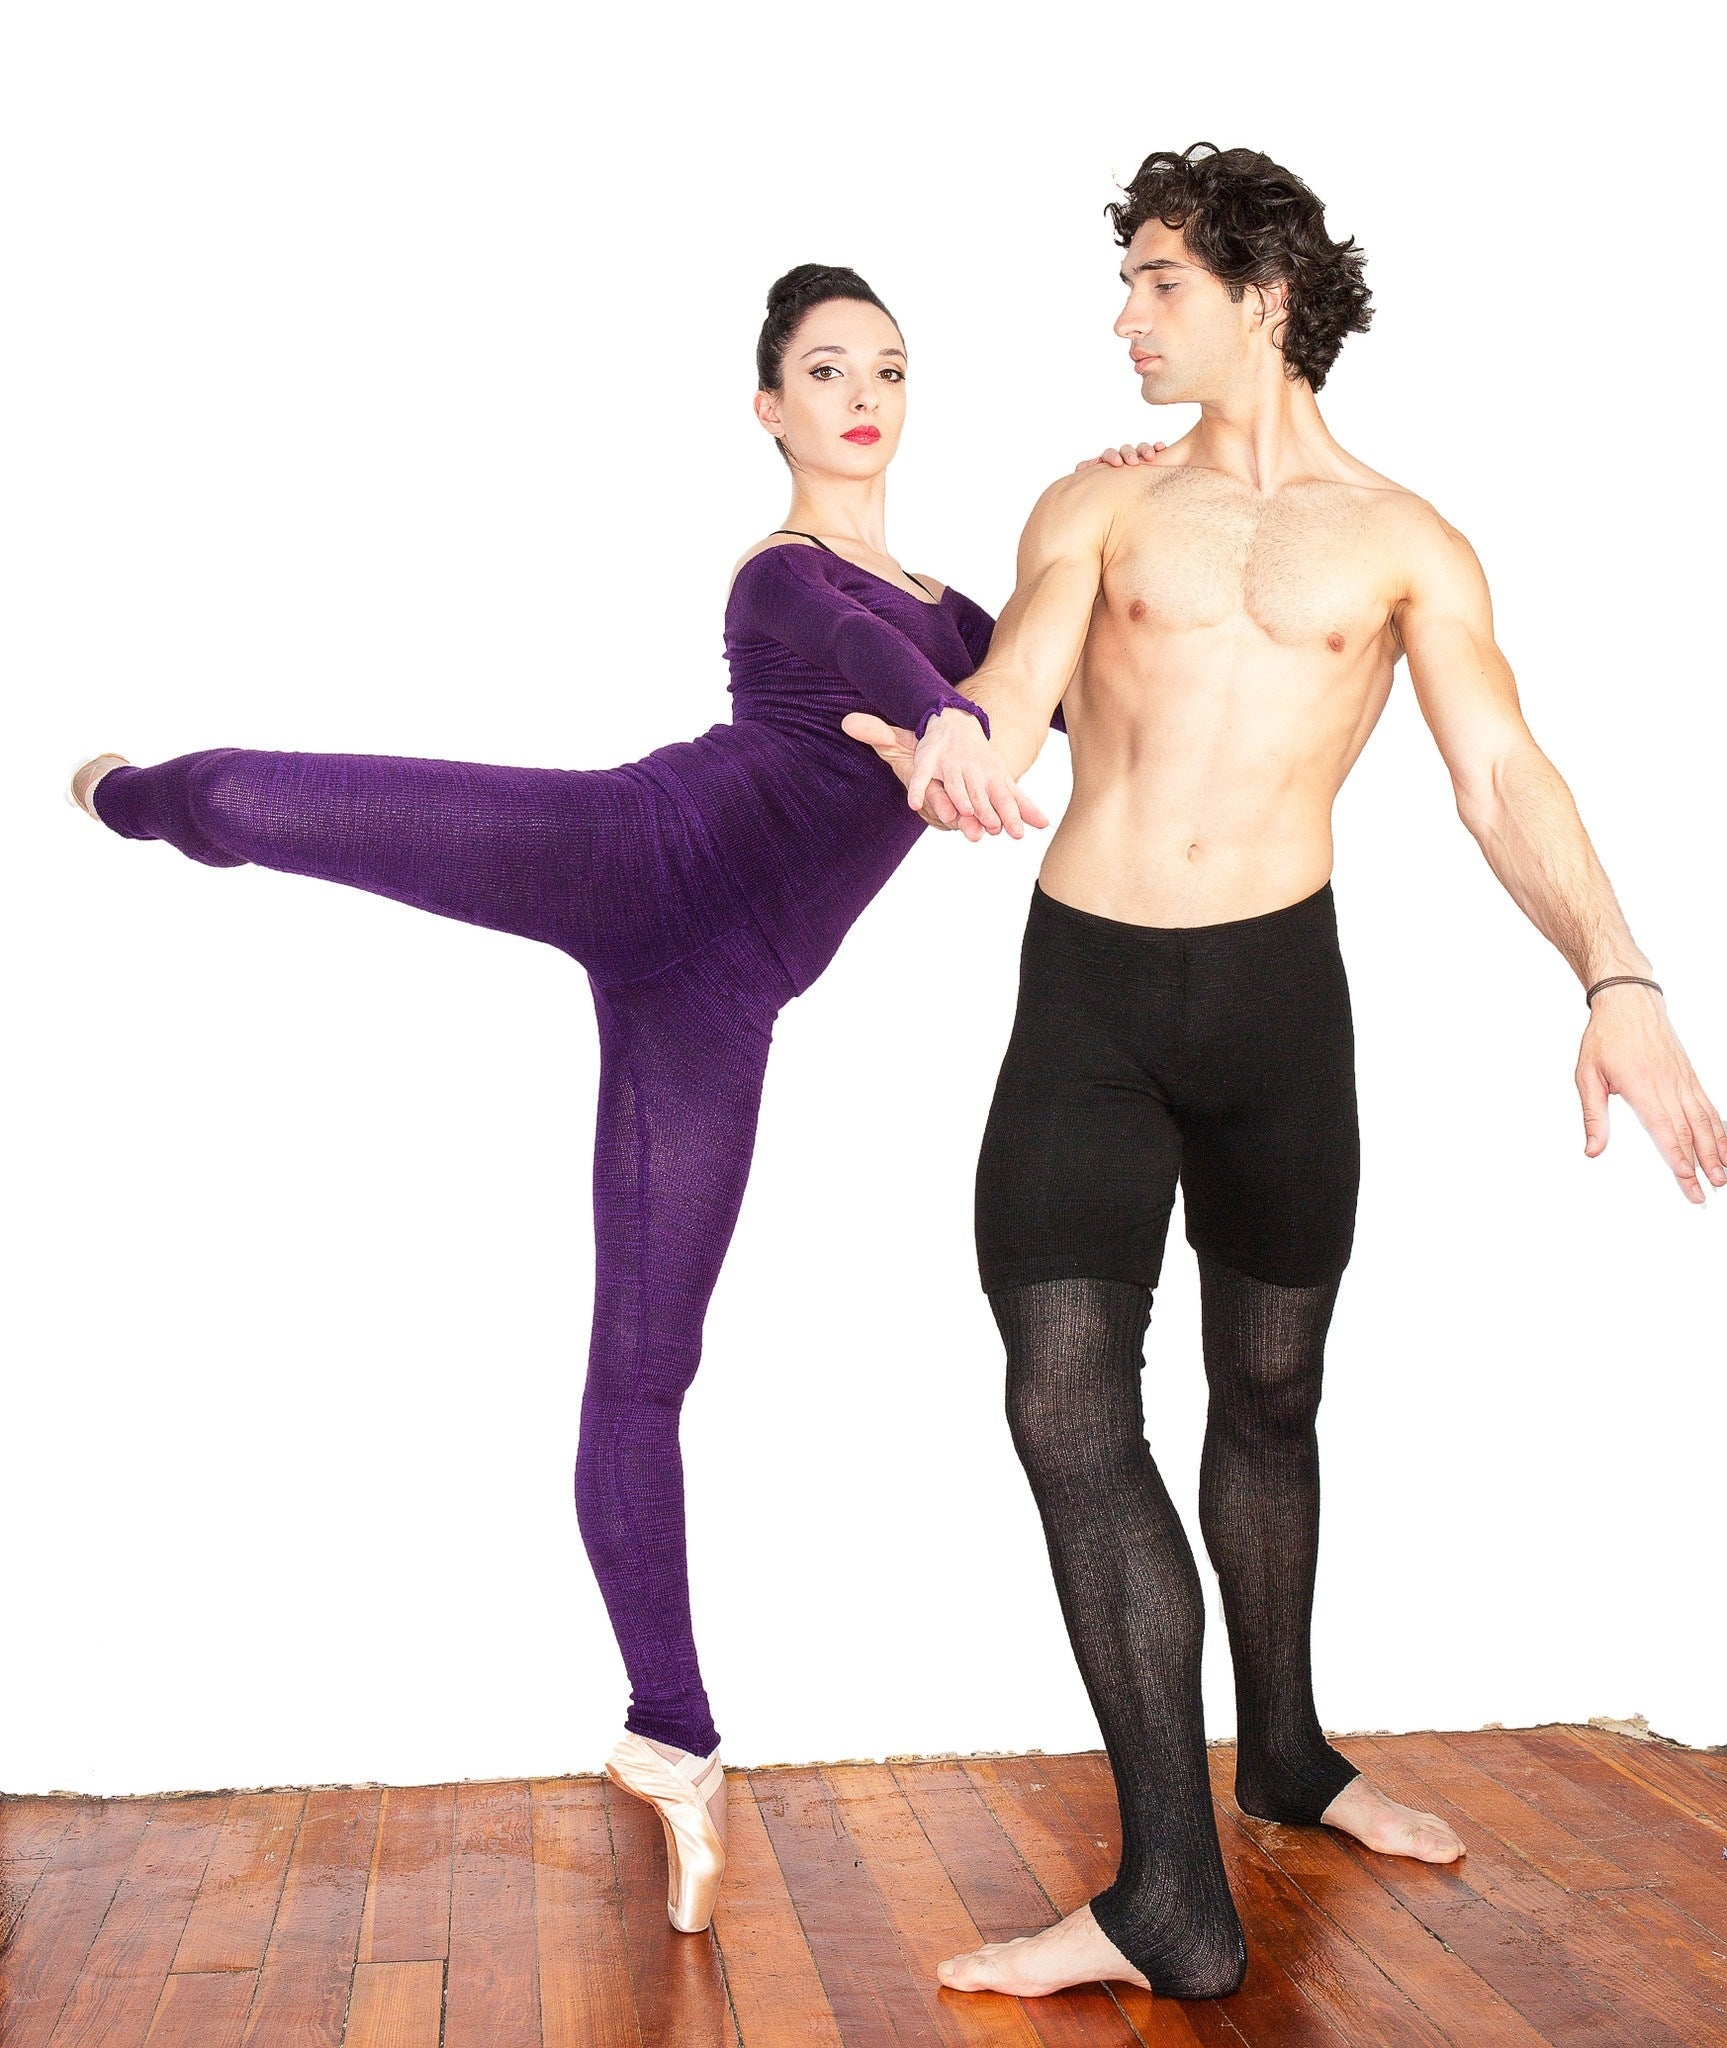 Ballet Dance Warm Up Off Shoulder Dress & Matching Stretch Knit Low Rise KD dance & Yoga Leggings @KDdanceNewYork #MadeInUSA - 6